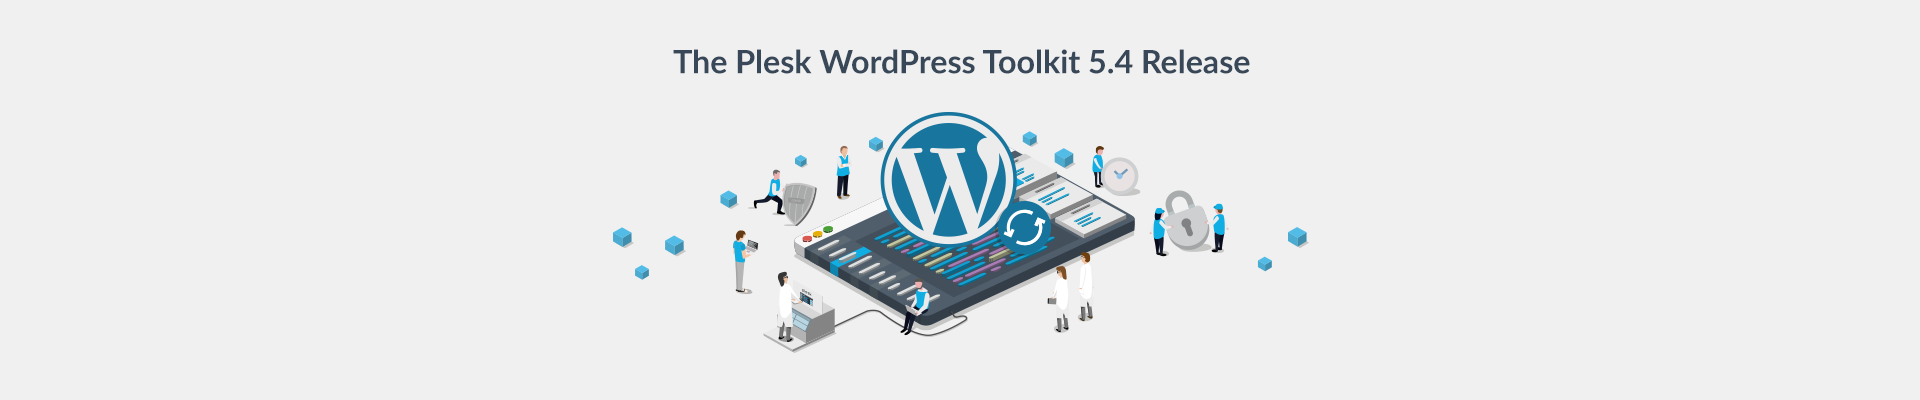 WordPress Toolkit 5.4 Release - Plesk